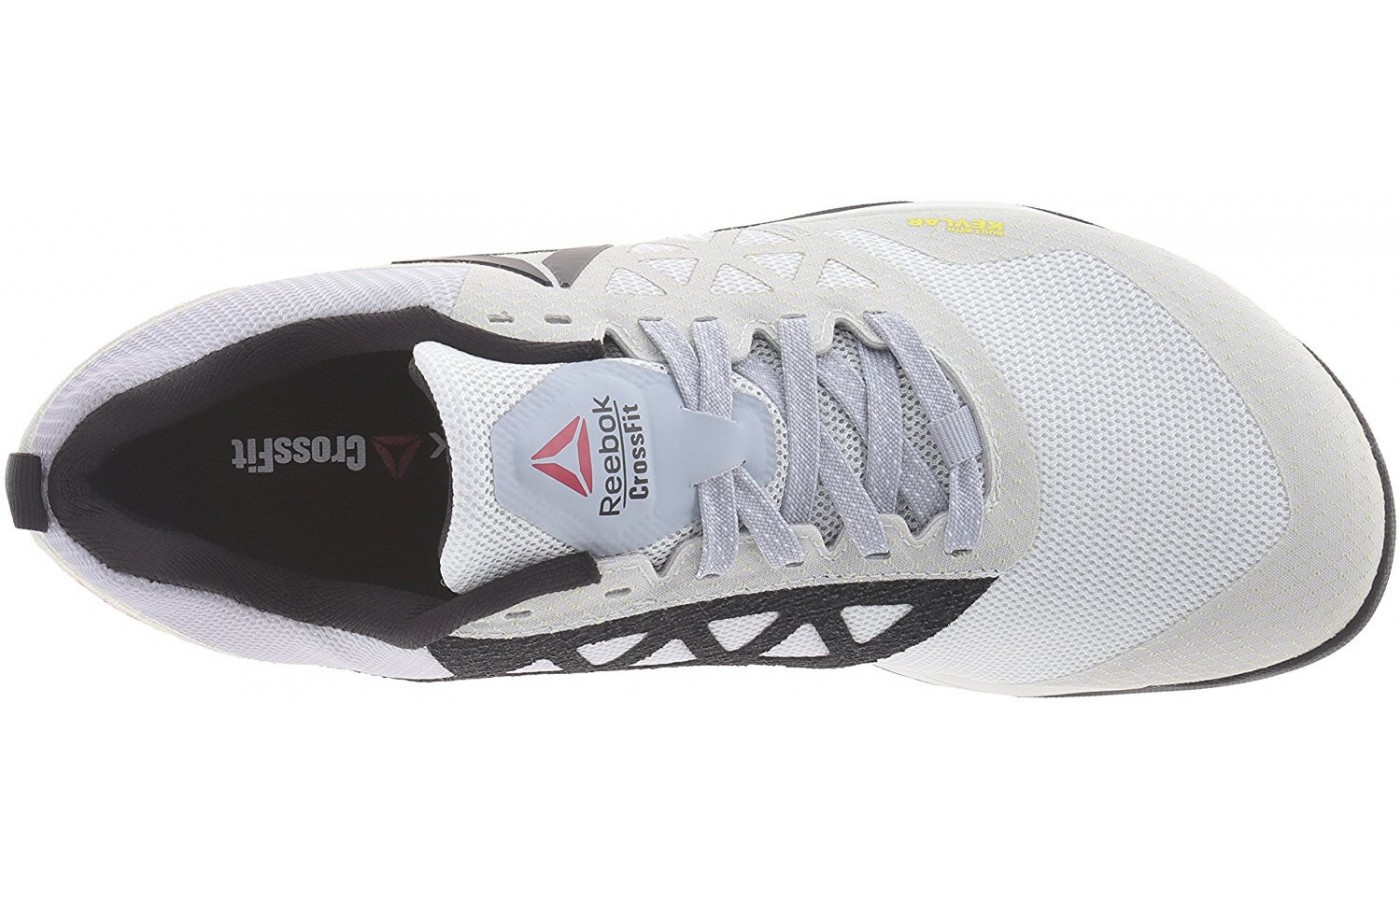 Top view of Reebok Crossfit Nano 6.0